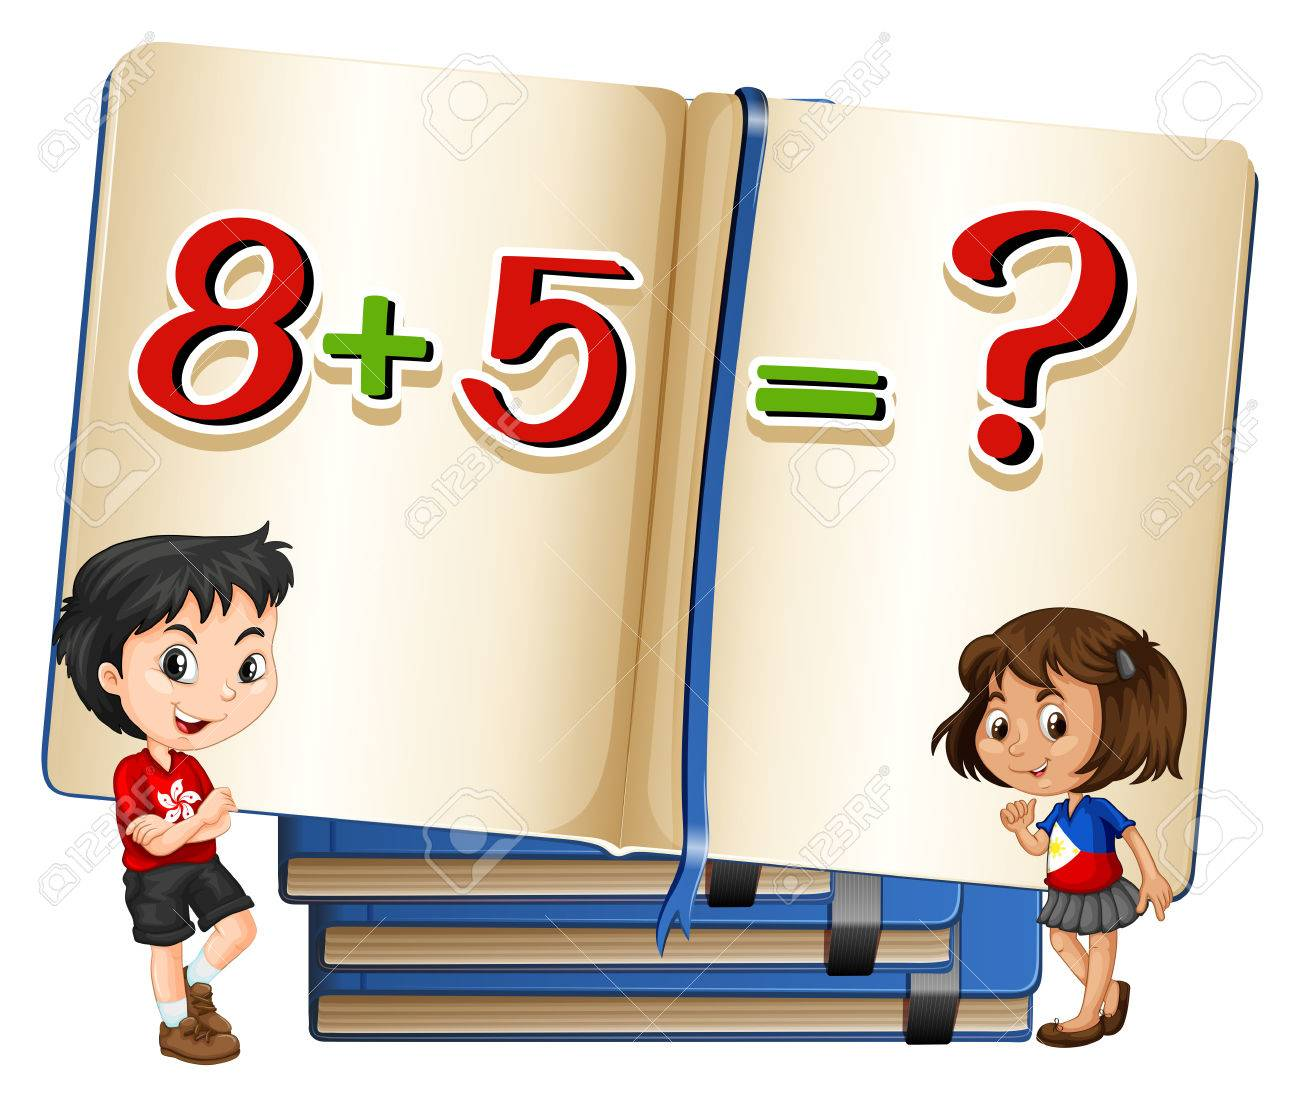 Kids And Math Problem In Book Illustration Royalty Free Cliparts ...